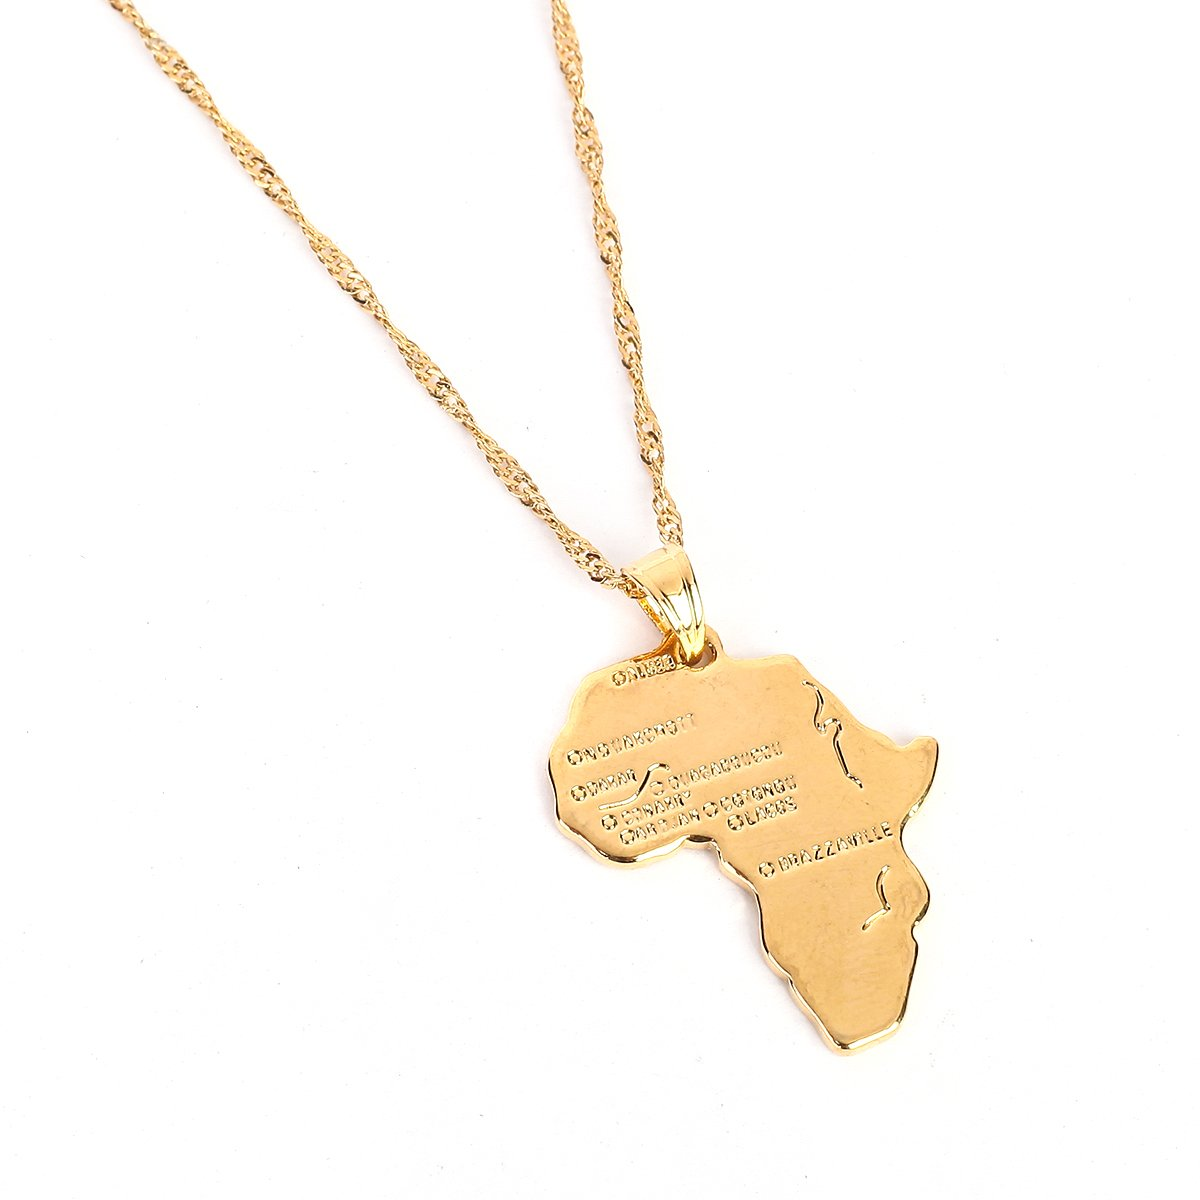 BR Gold Jewelry Big Size Crystal Africa Map Pendant Necklace Women Girl 24K Gold Plated African Map Hiphop Item Yiwu Bangrui Jewelry Co. Ltd P-00032